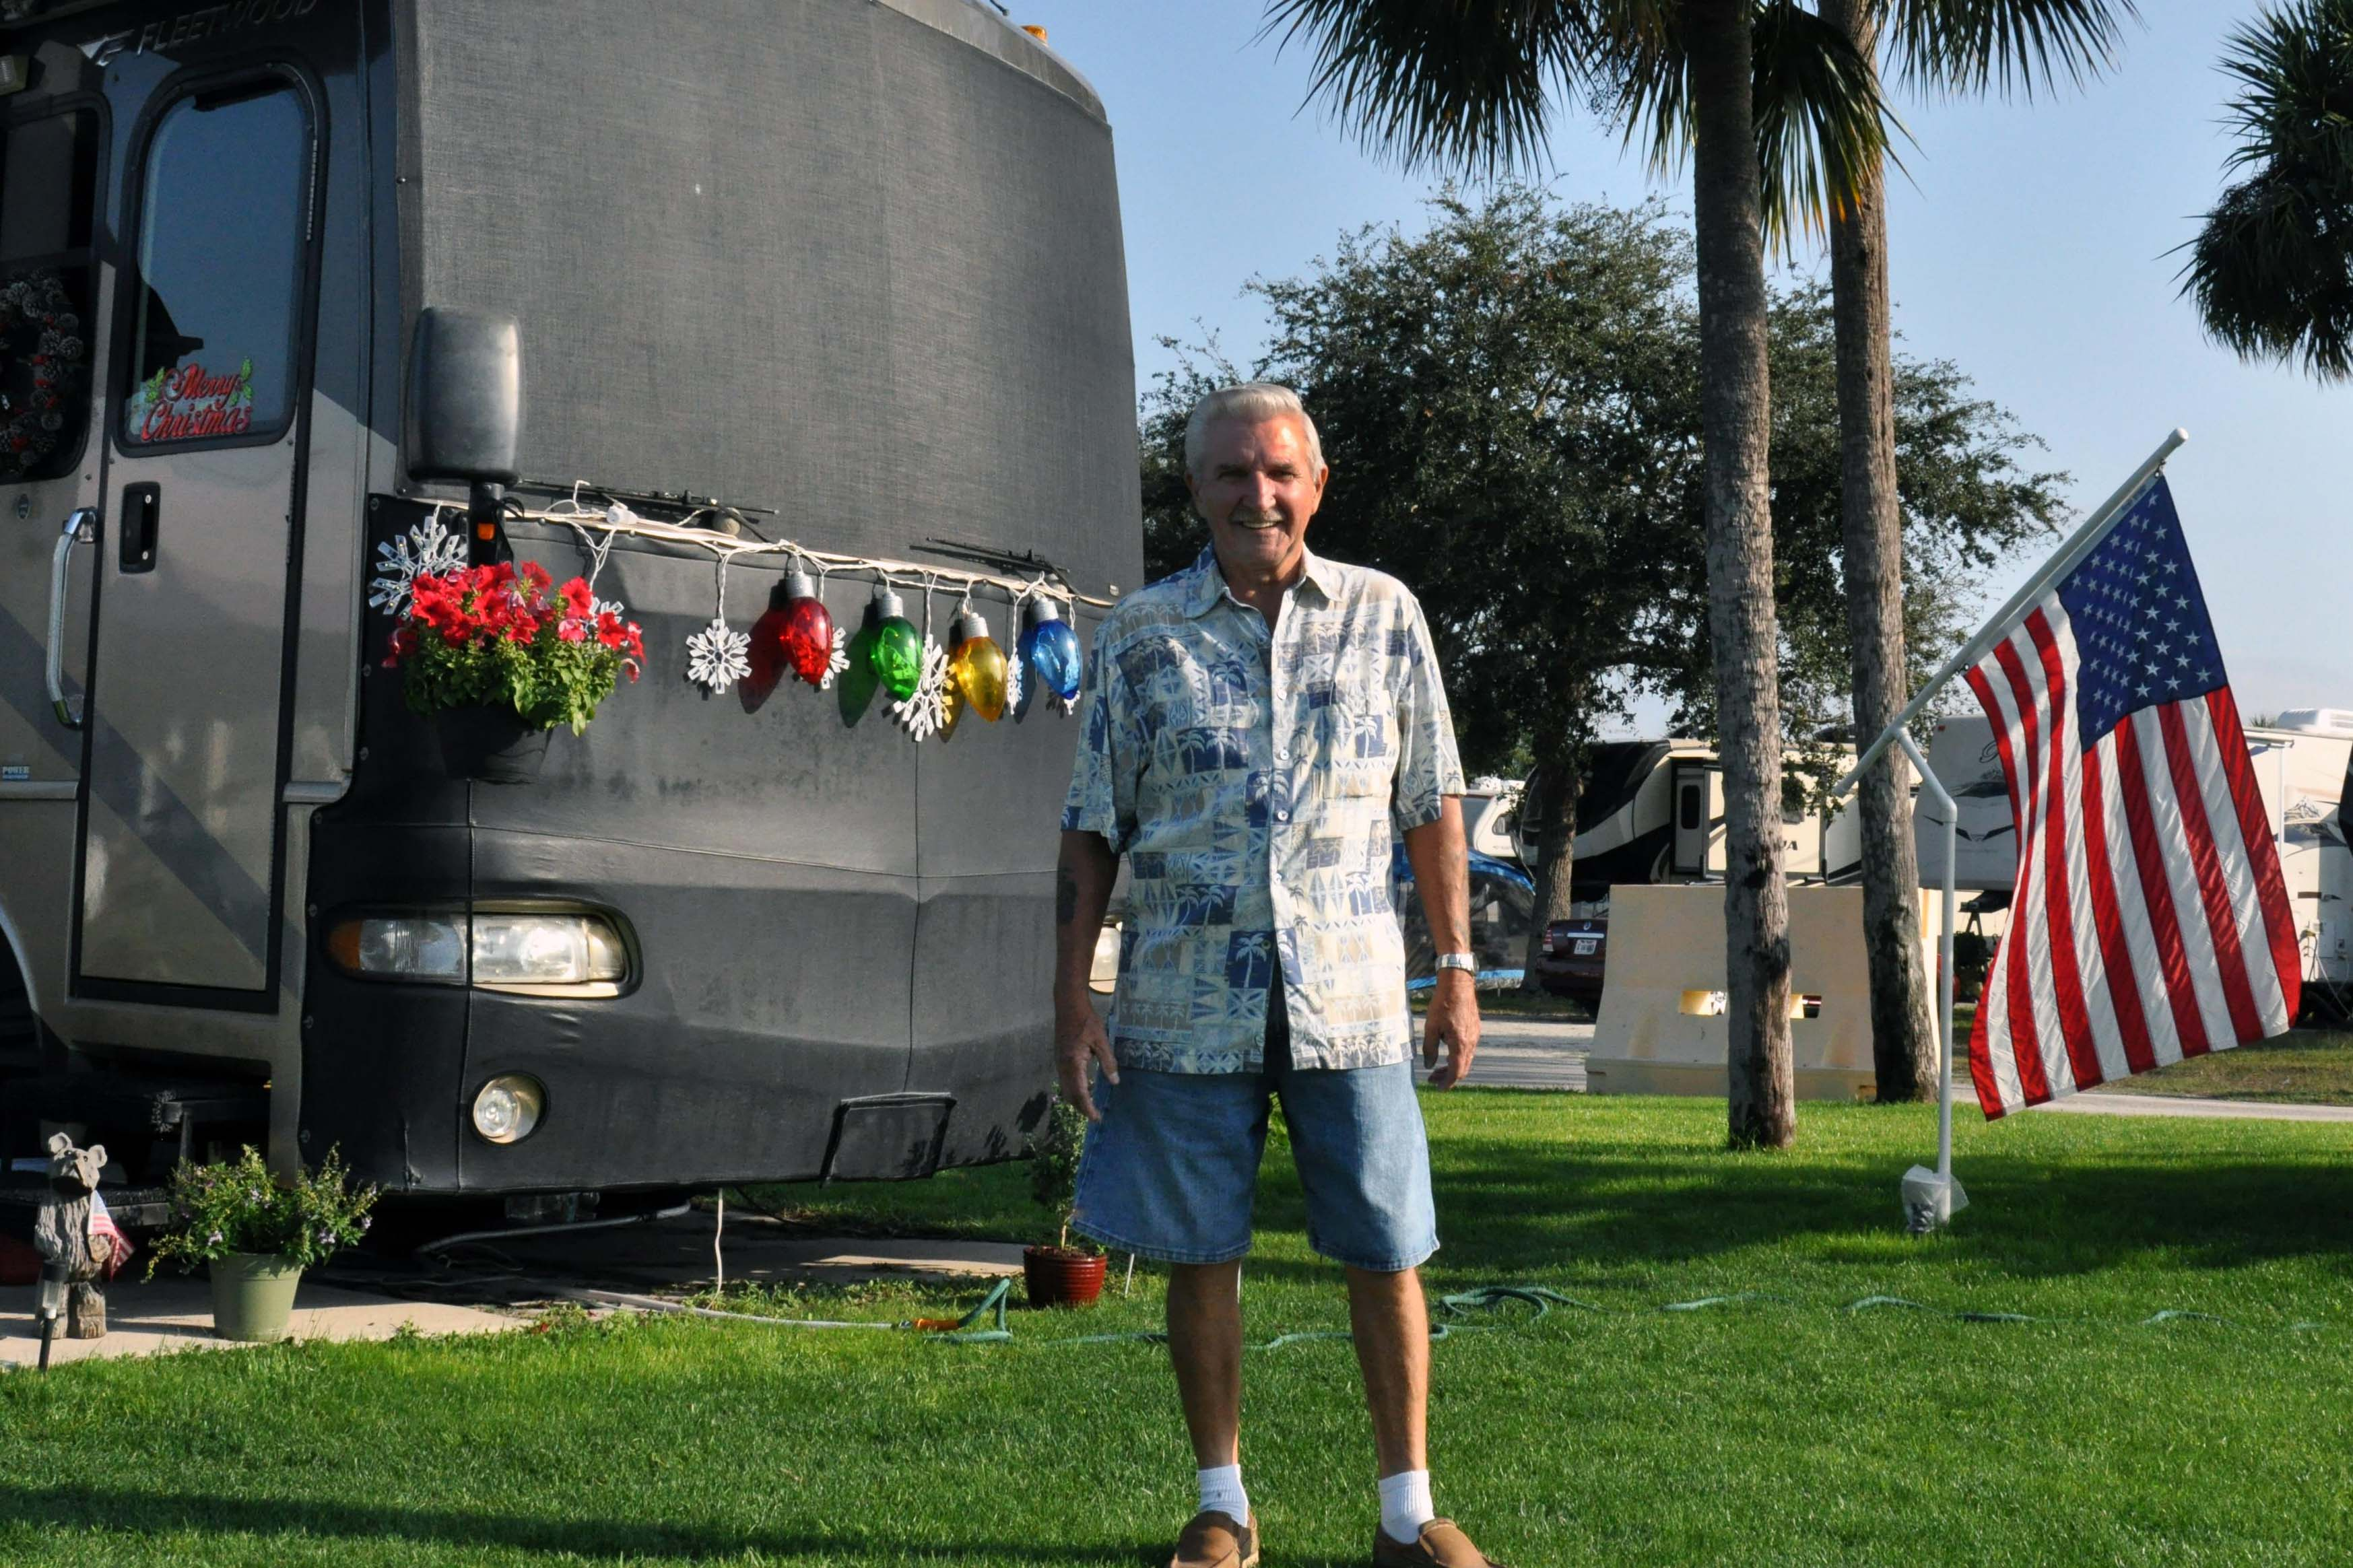 Caption: Rhode Island resident Tom Peters regularly vacations at the MacDill Air Force Base RV park., Credit: Bobbie O'Brien/American Homefront